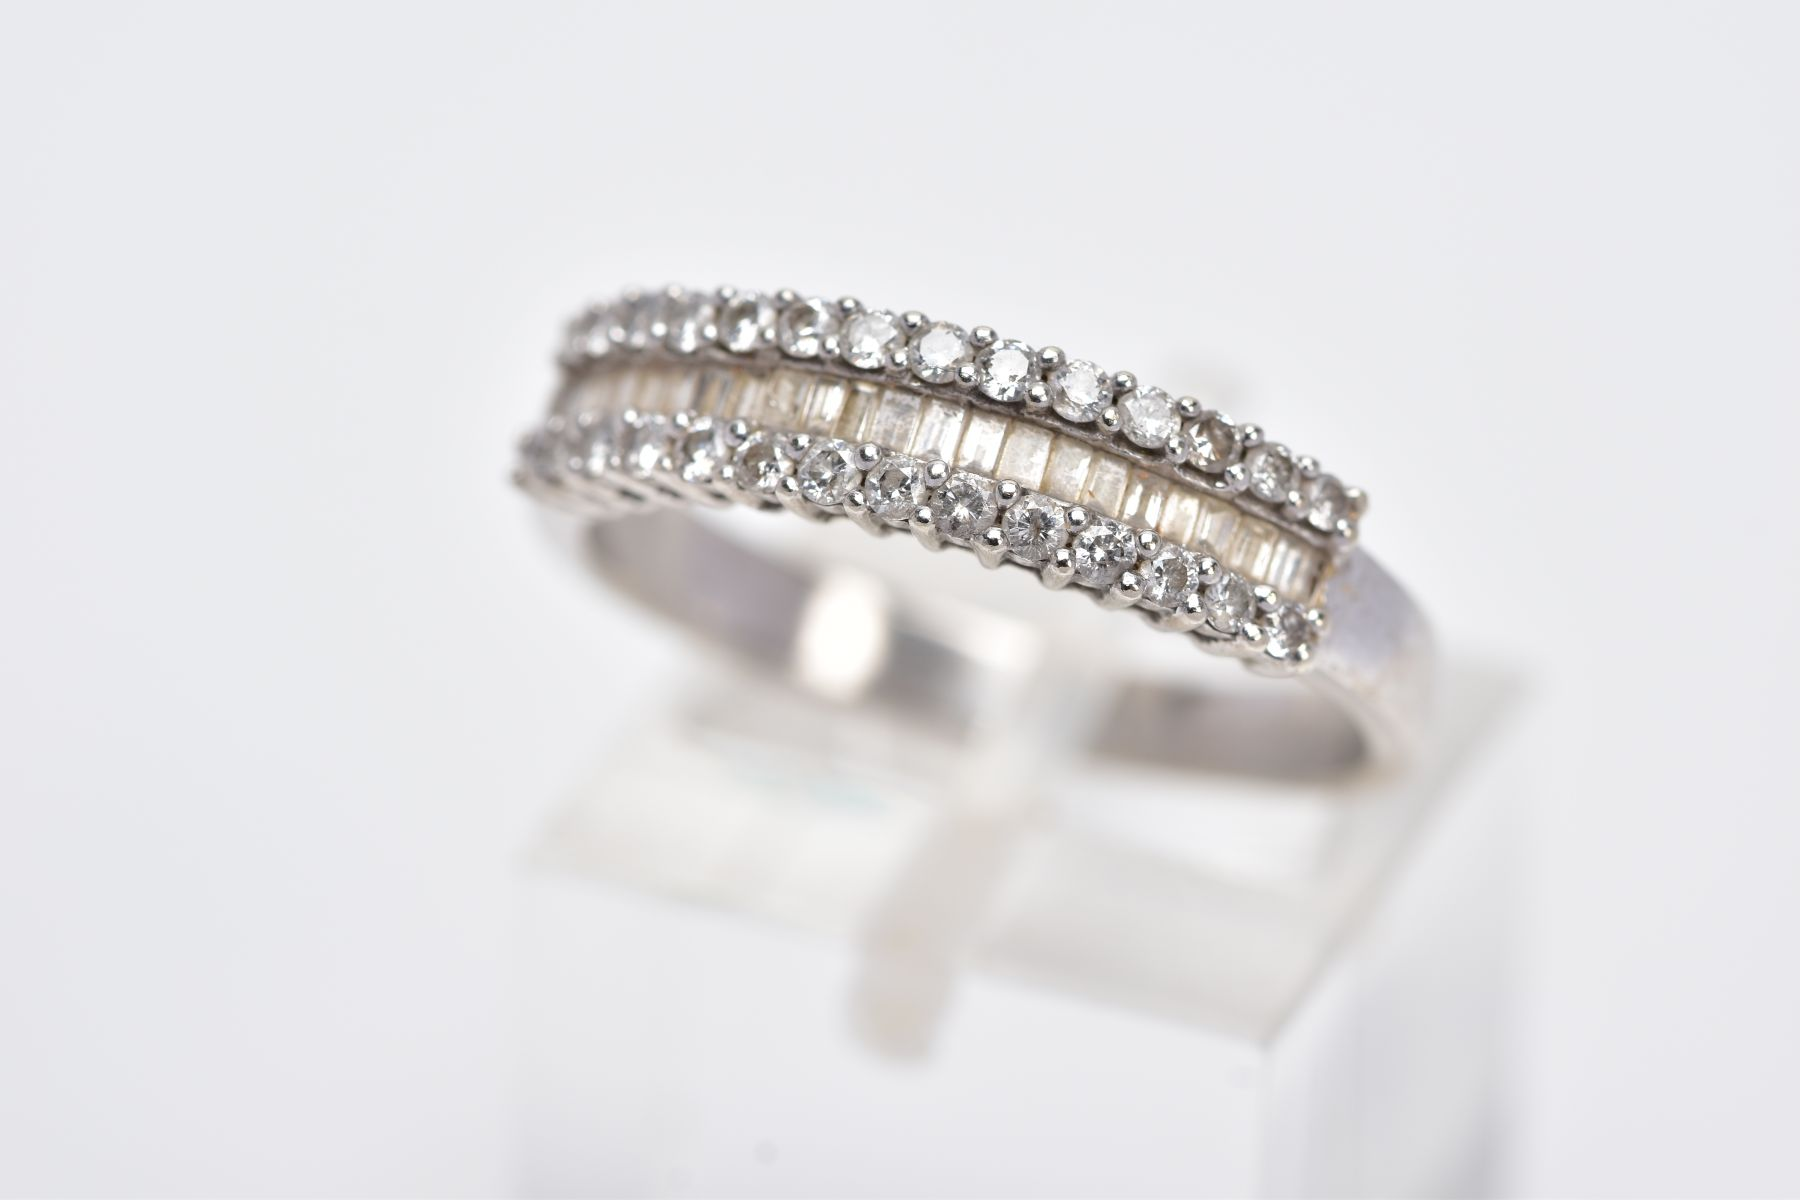 A 9CT WHITE GOLD HALFHOOP DIAMOND RING, designed with a central row of rectangular cut diamonds